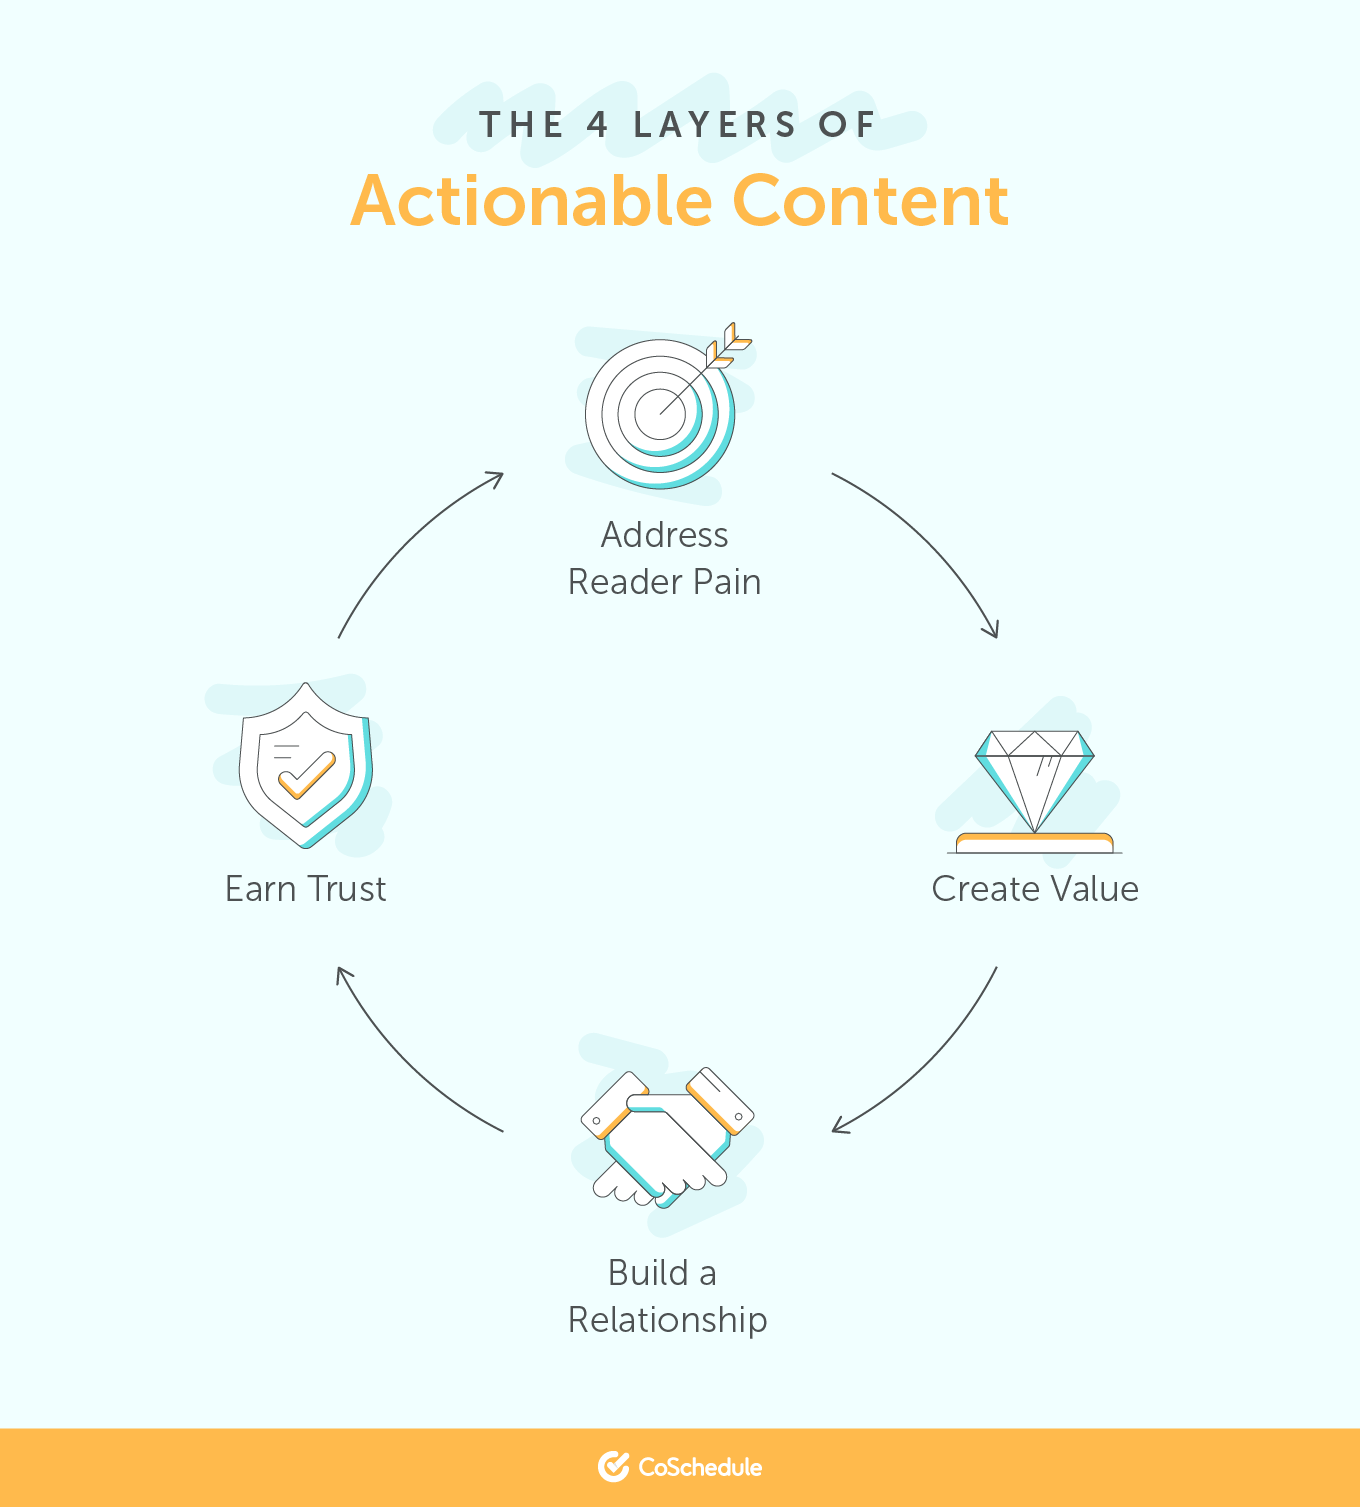 The 4 Layers of Actionable Content